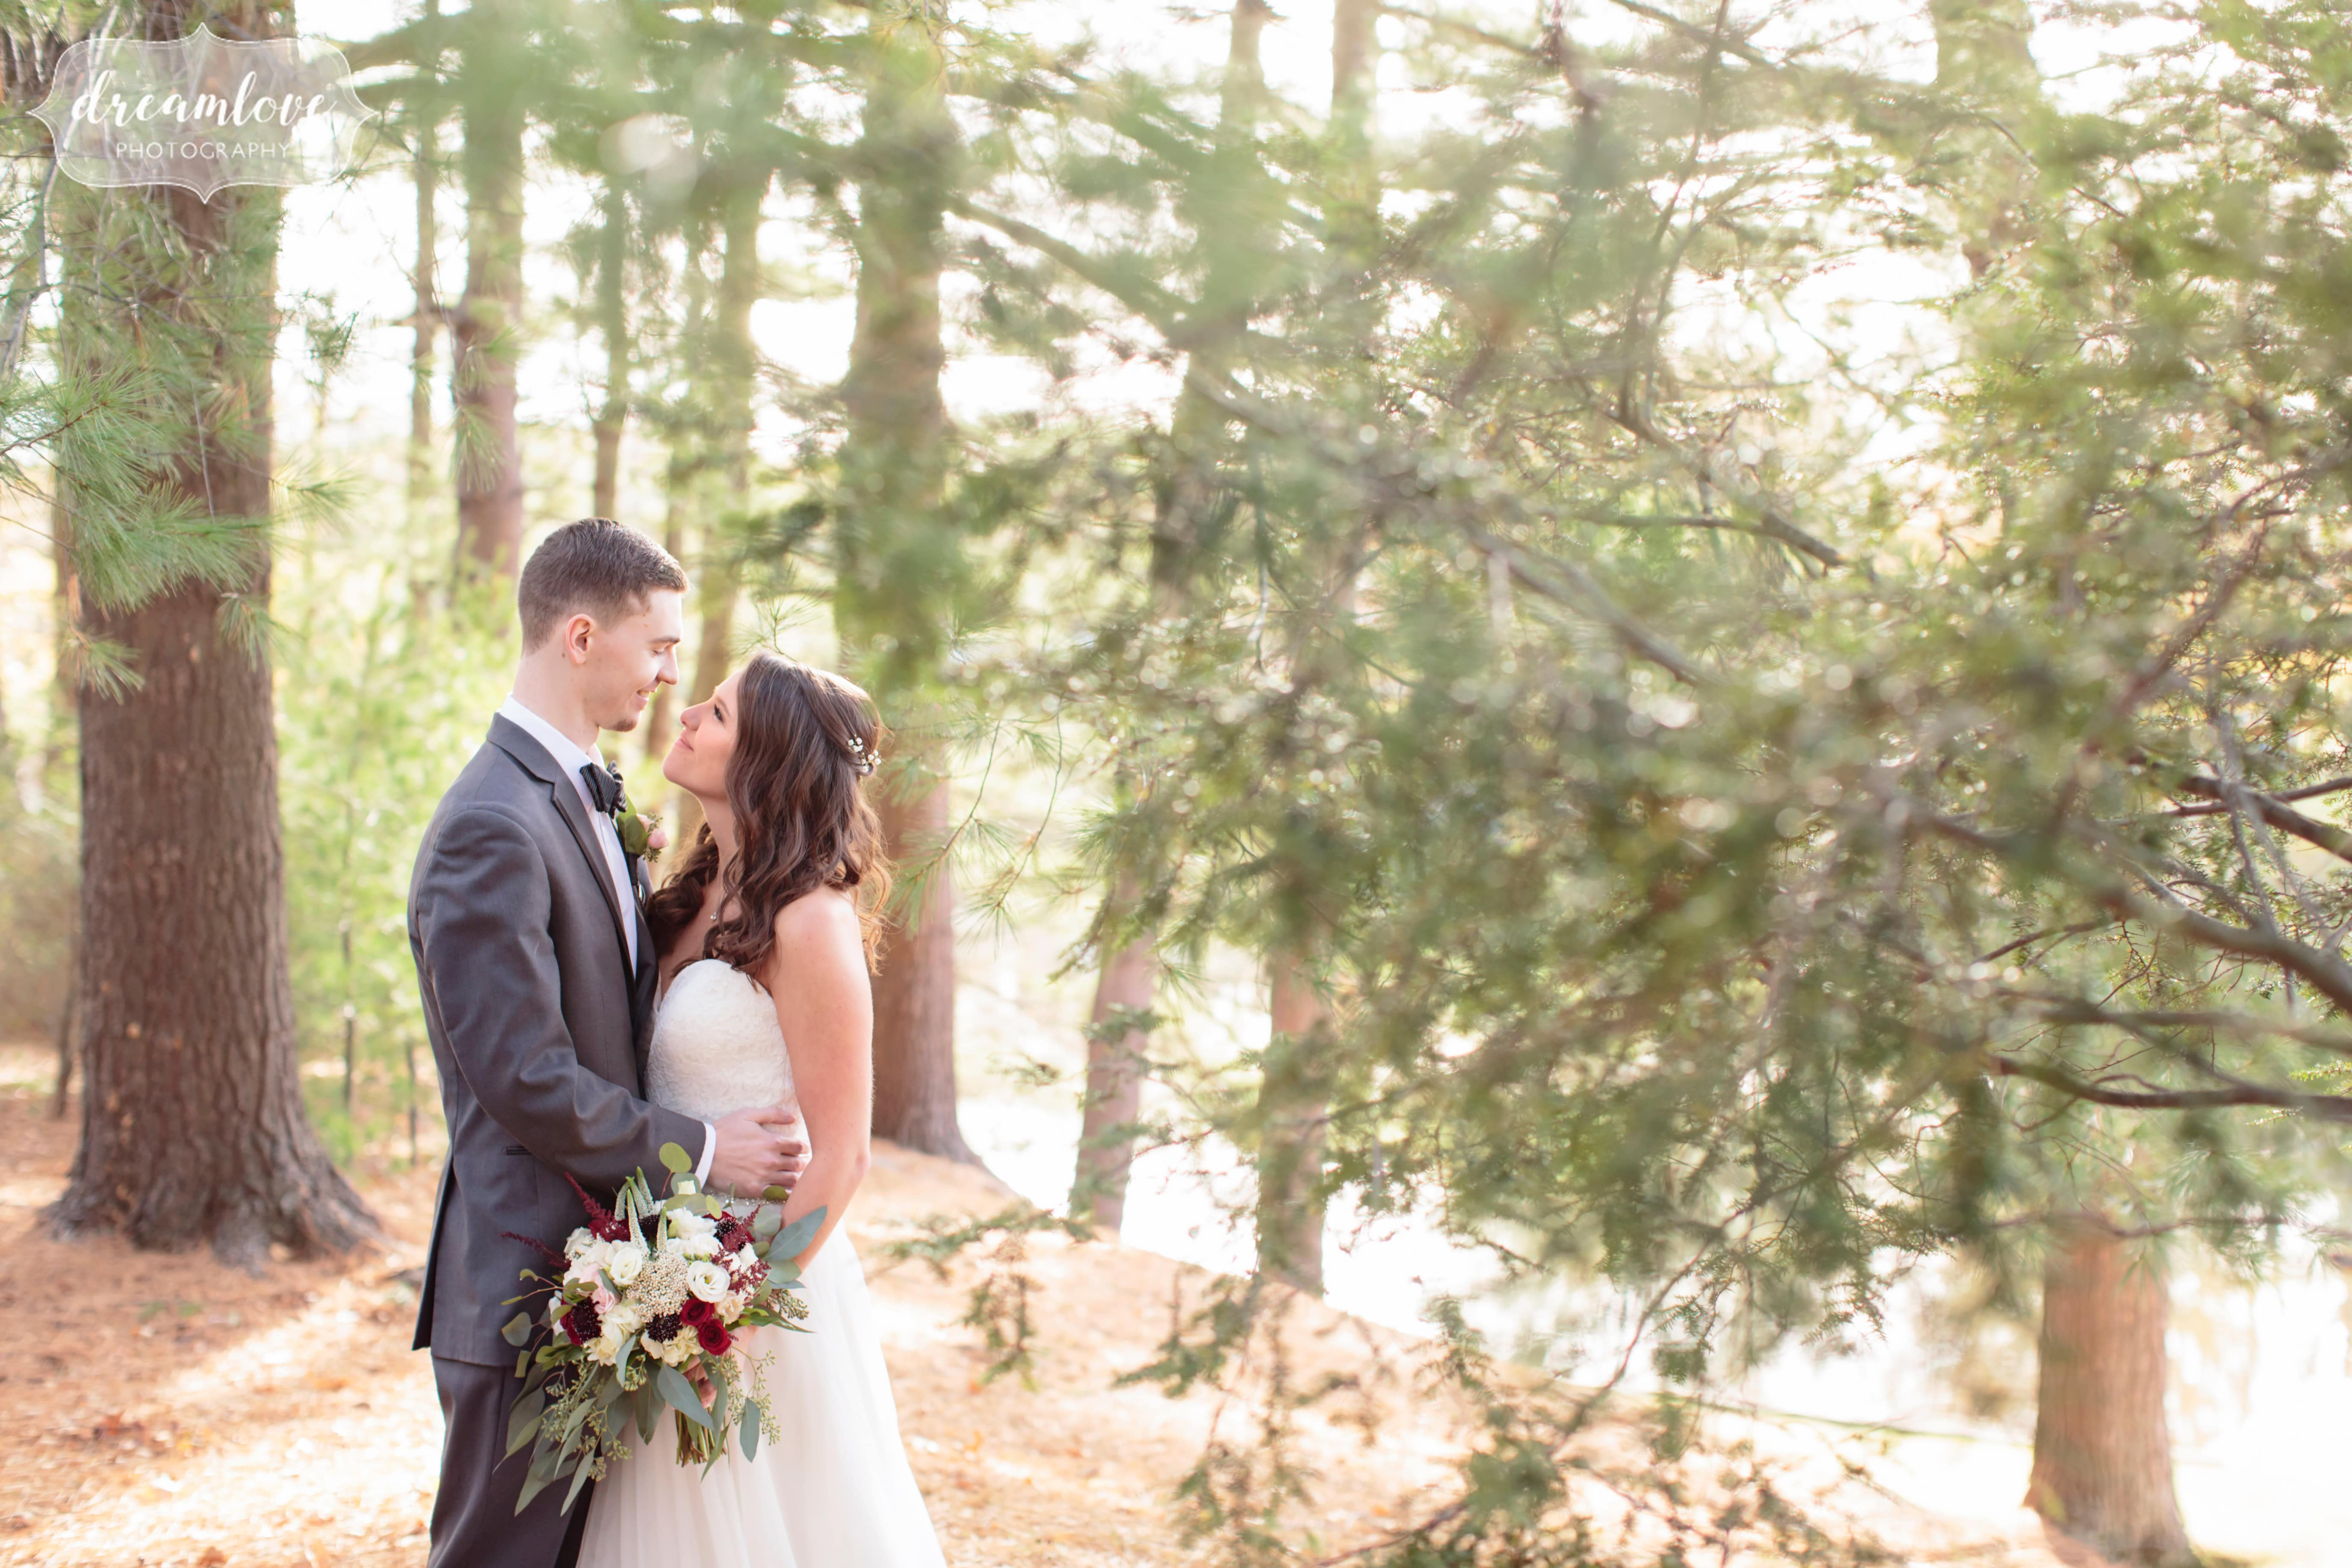 Bride and groom kiss in a sunbursty forest at the Pavilion on Crystal Lake.